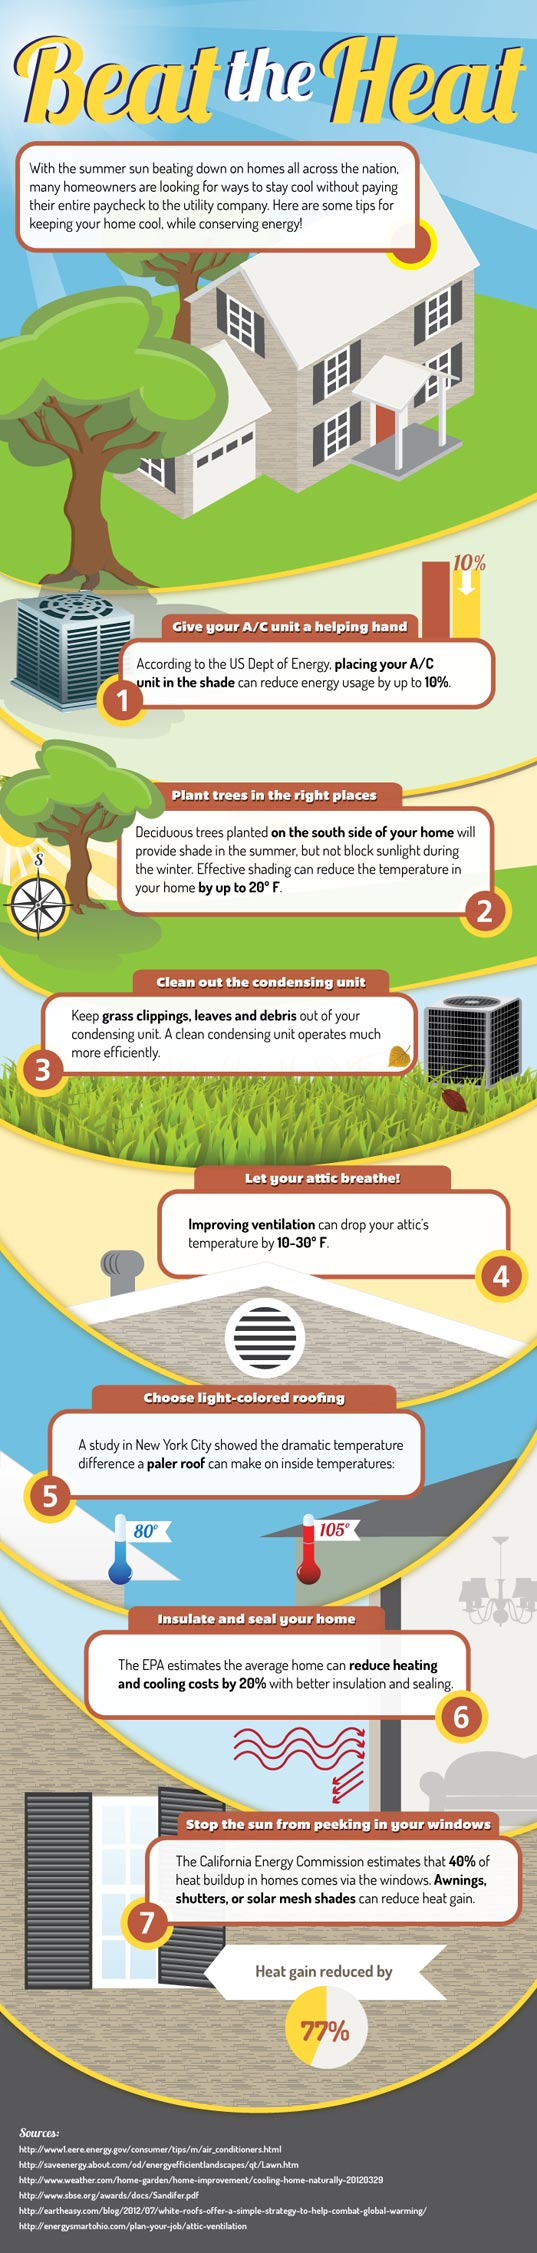 7 energy efficient ways to beat the heat this summer infographic and survival - Gardening in summer heat a small survival guide ...